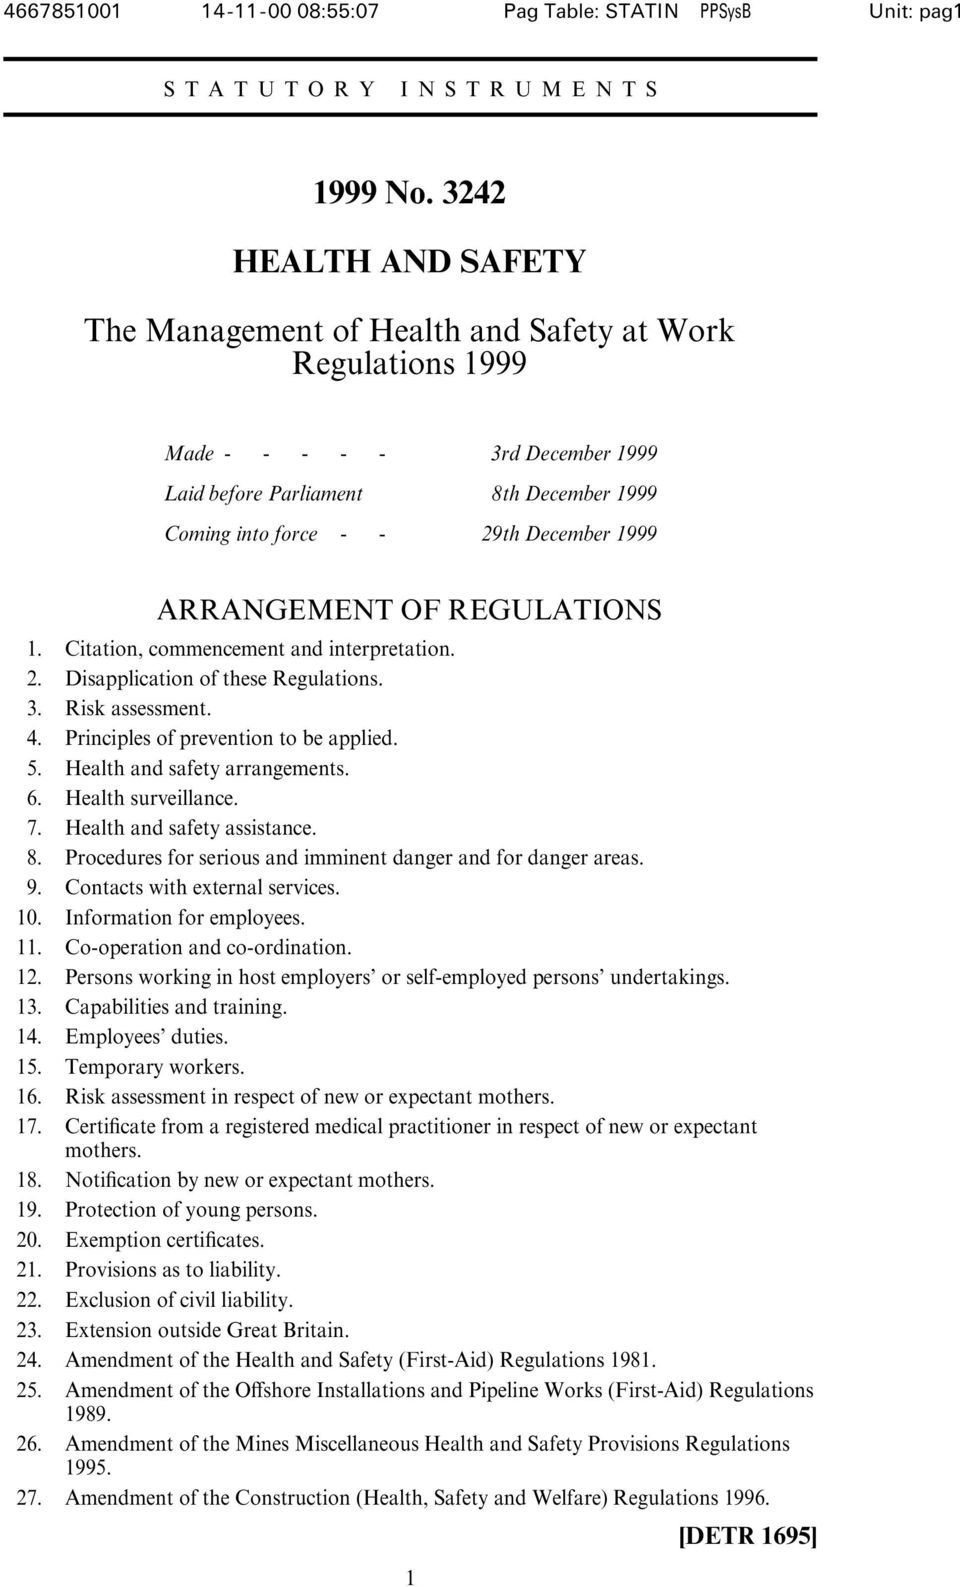 REGULATIONS 1. Citation, commencement and interpretation. 2. Disapplication of these Regulations. 3. Risk assessment. 4. Principles of prevention to be applied. 5. Health and safety arrangements. 6.